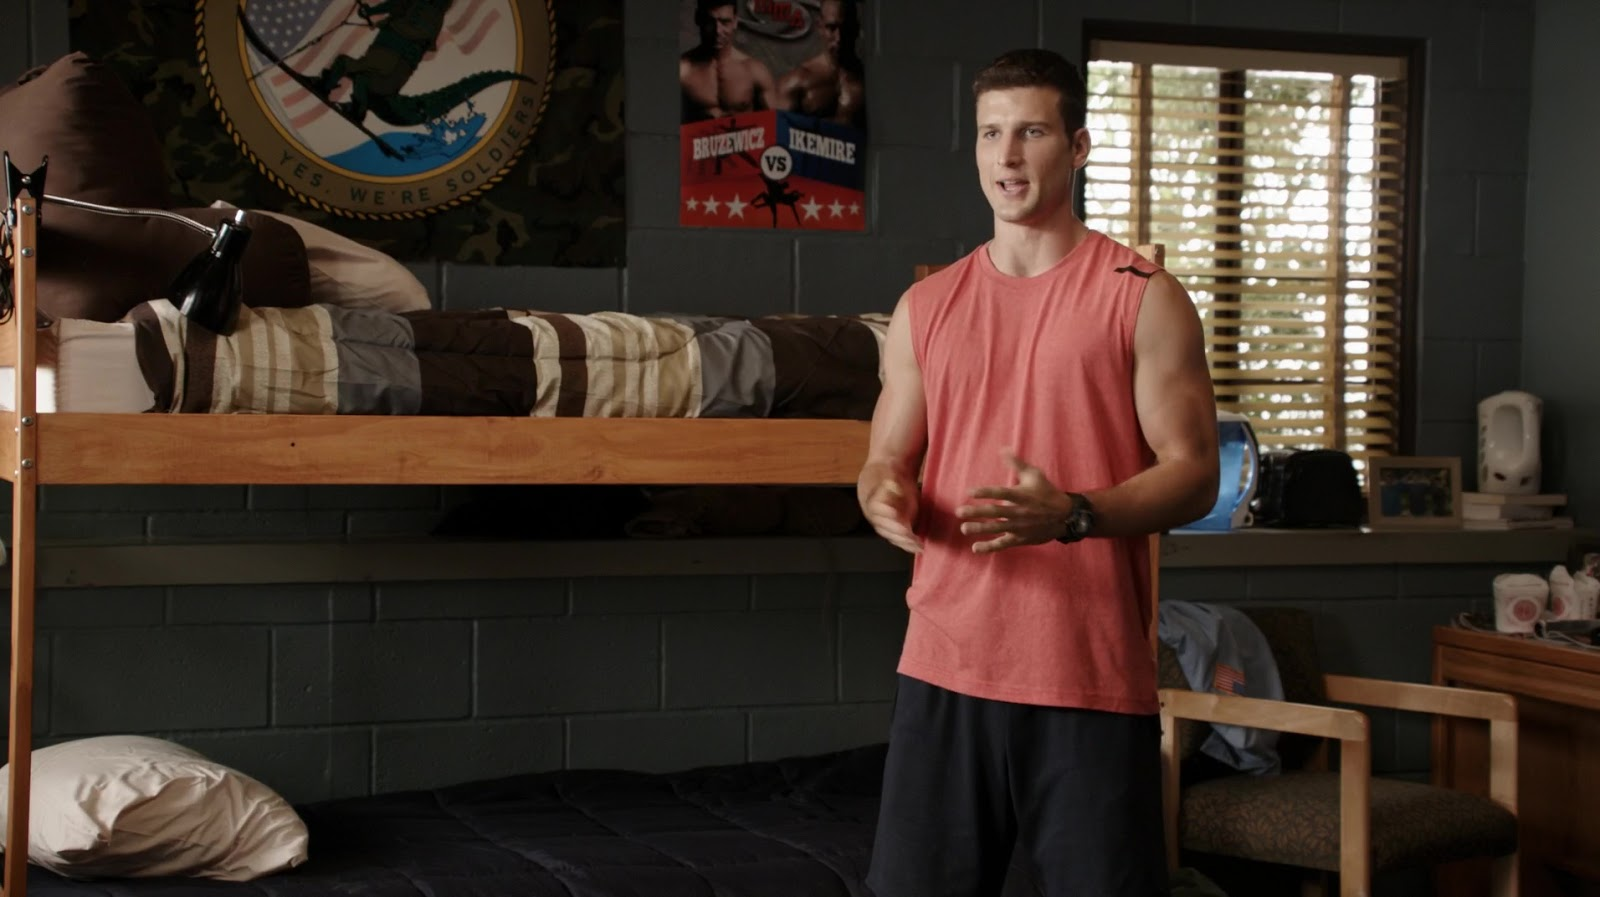 auscaps parker young and geoff stults shirtless in